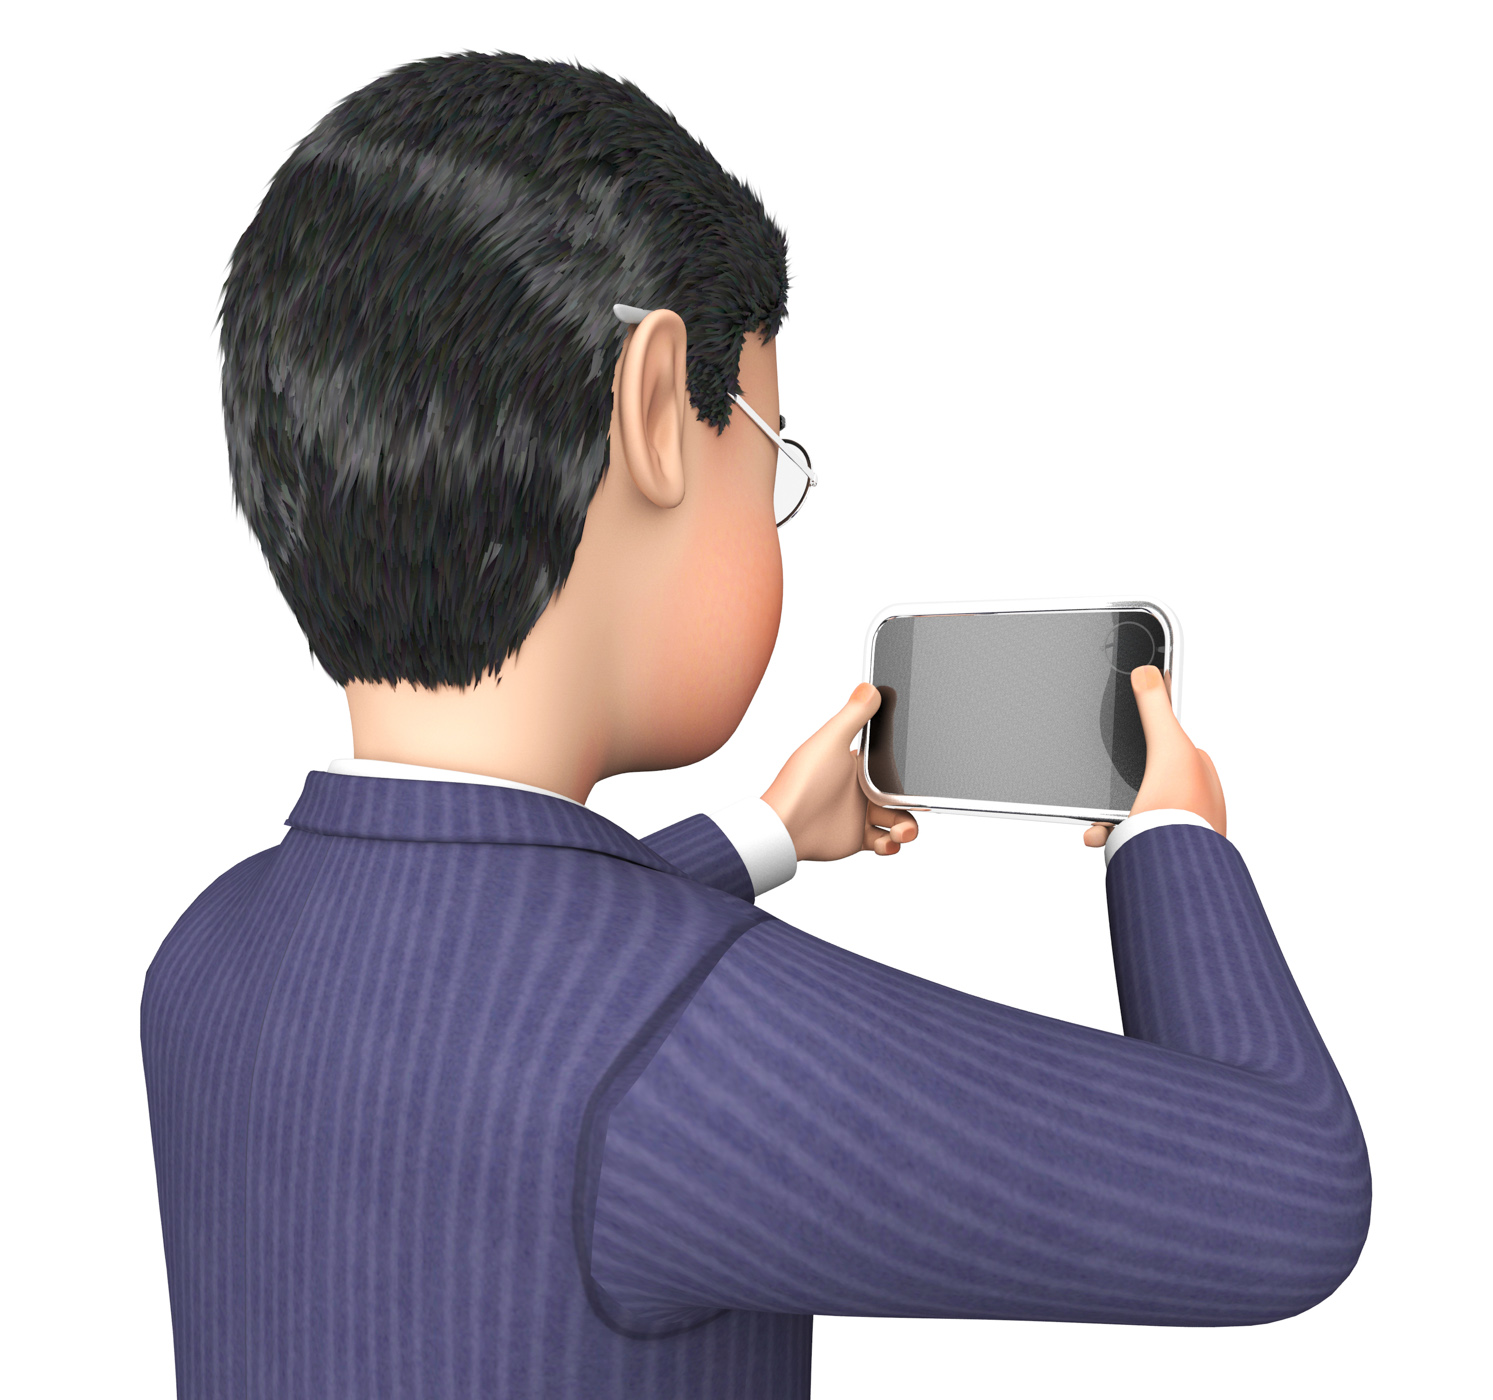 Smartphone character represents business person and businessman 3d ren photo